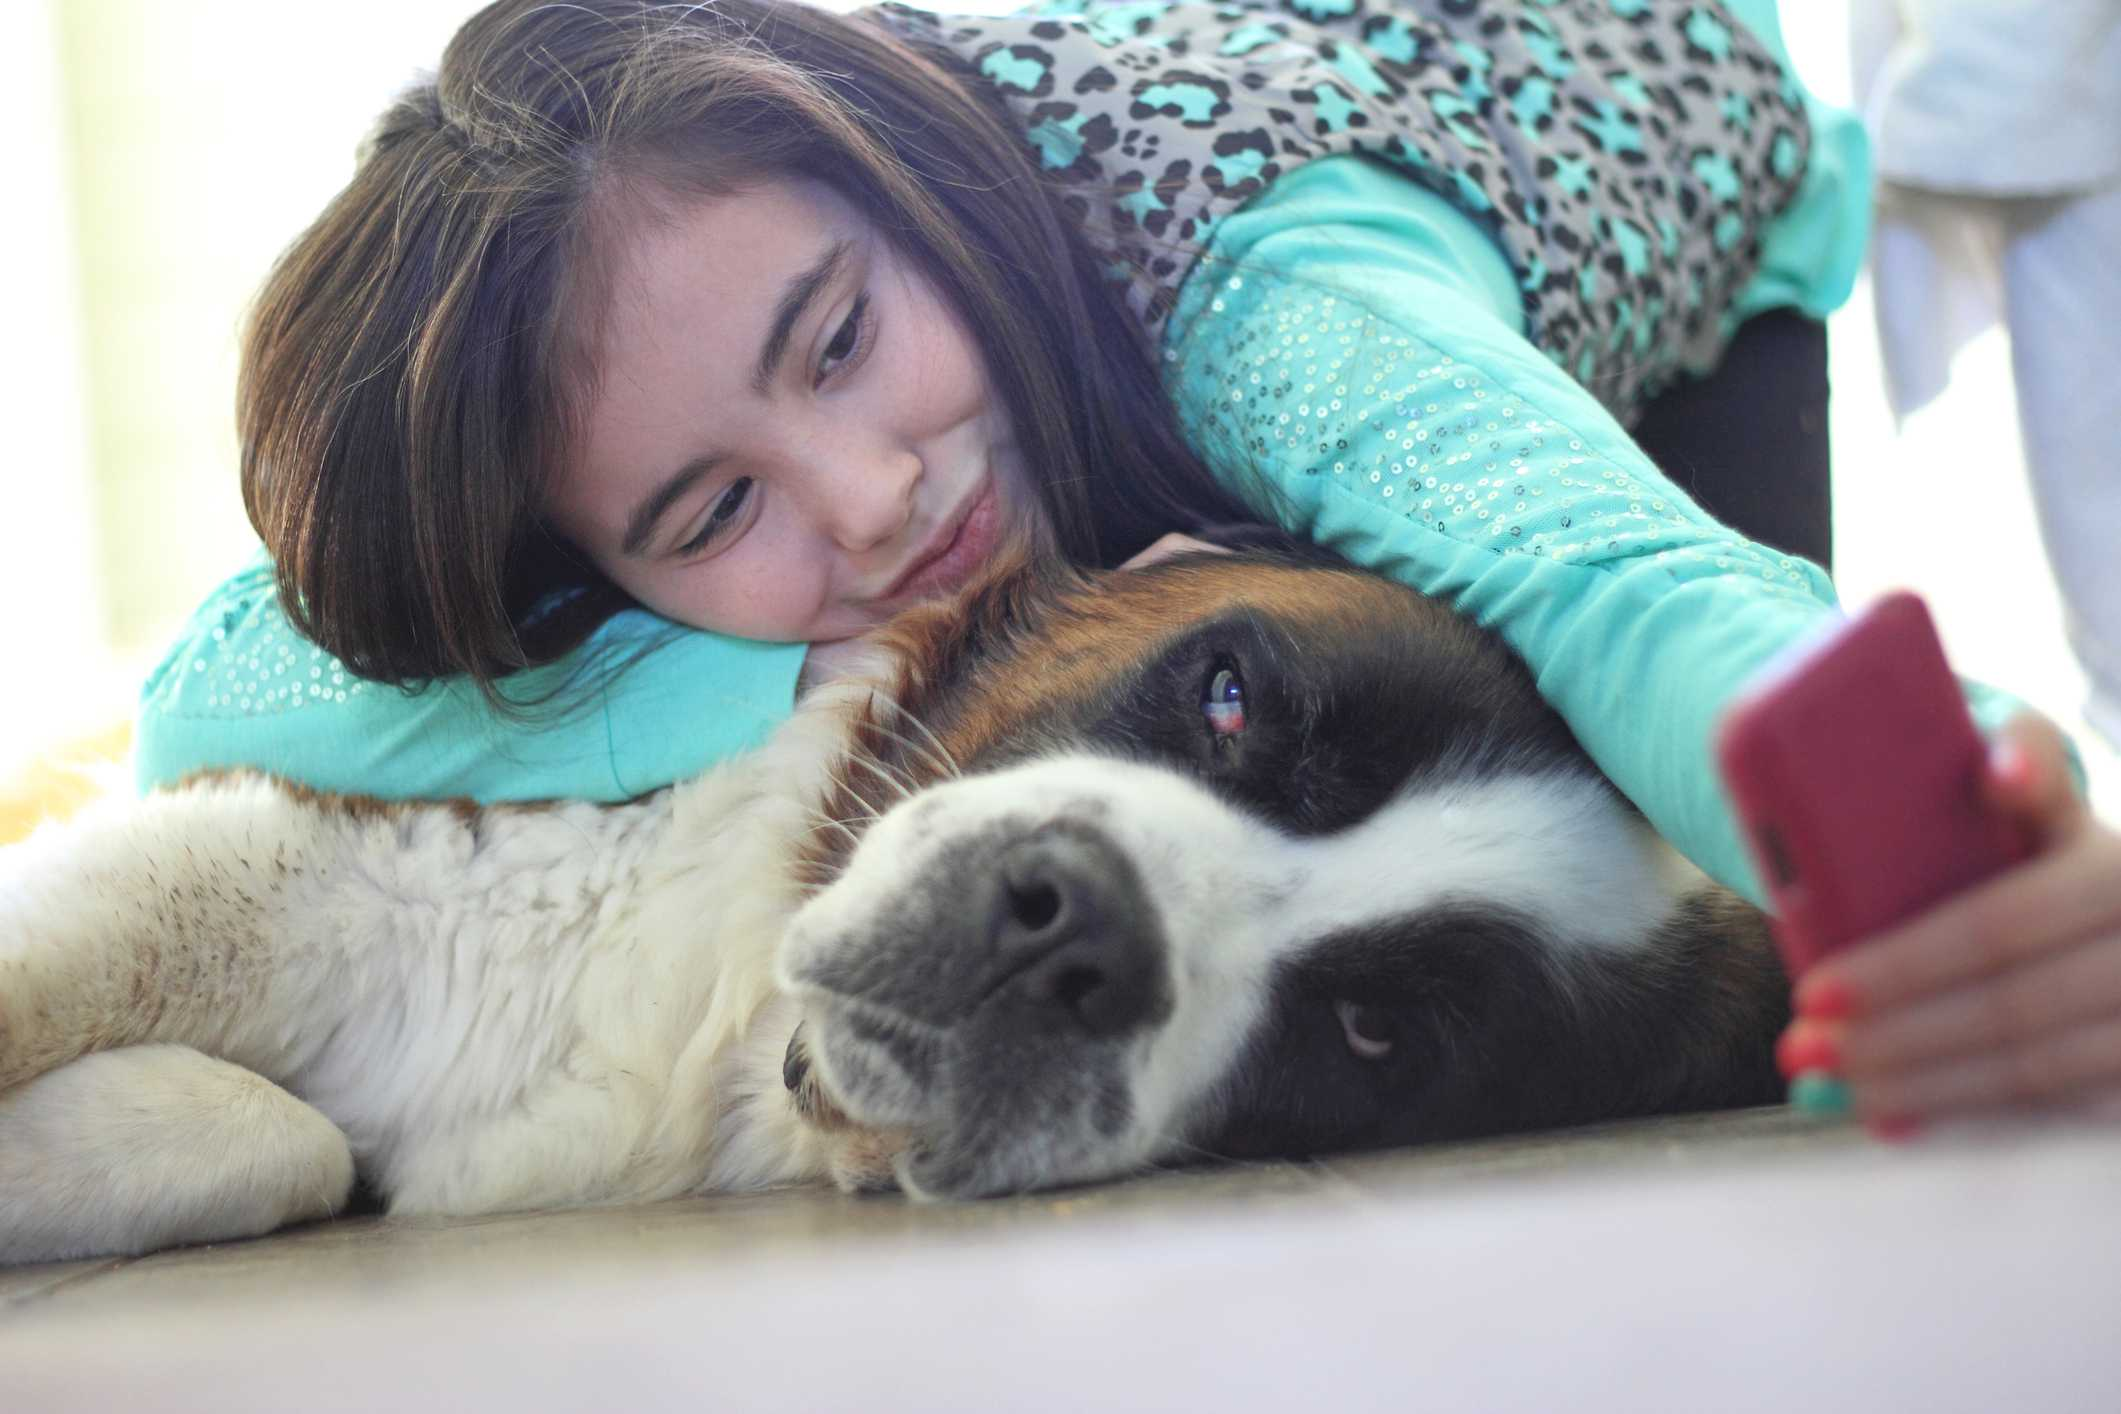 Woman taking a selfie with a large dog